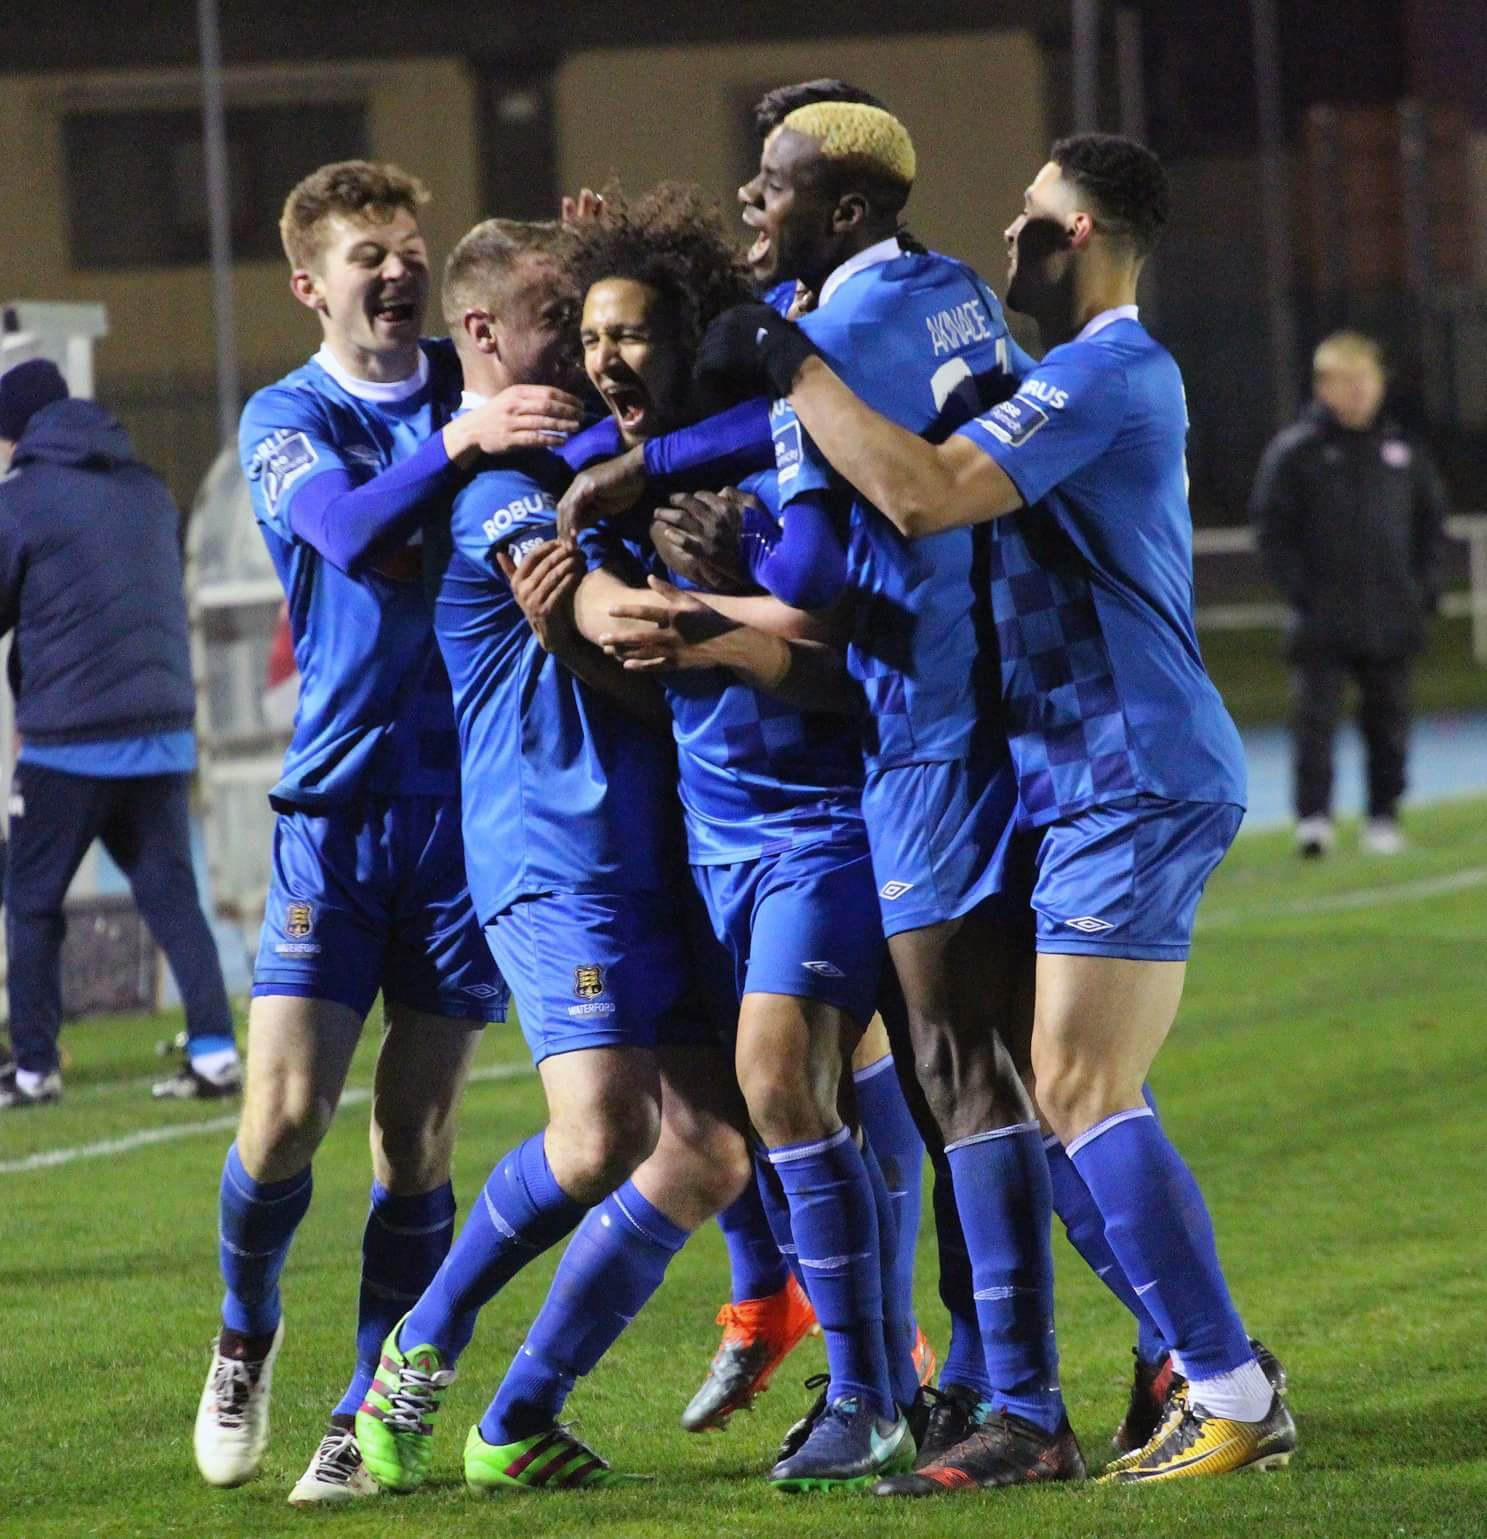 Waterford FC defeat St. Patricks Athletic 2 - 0.